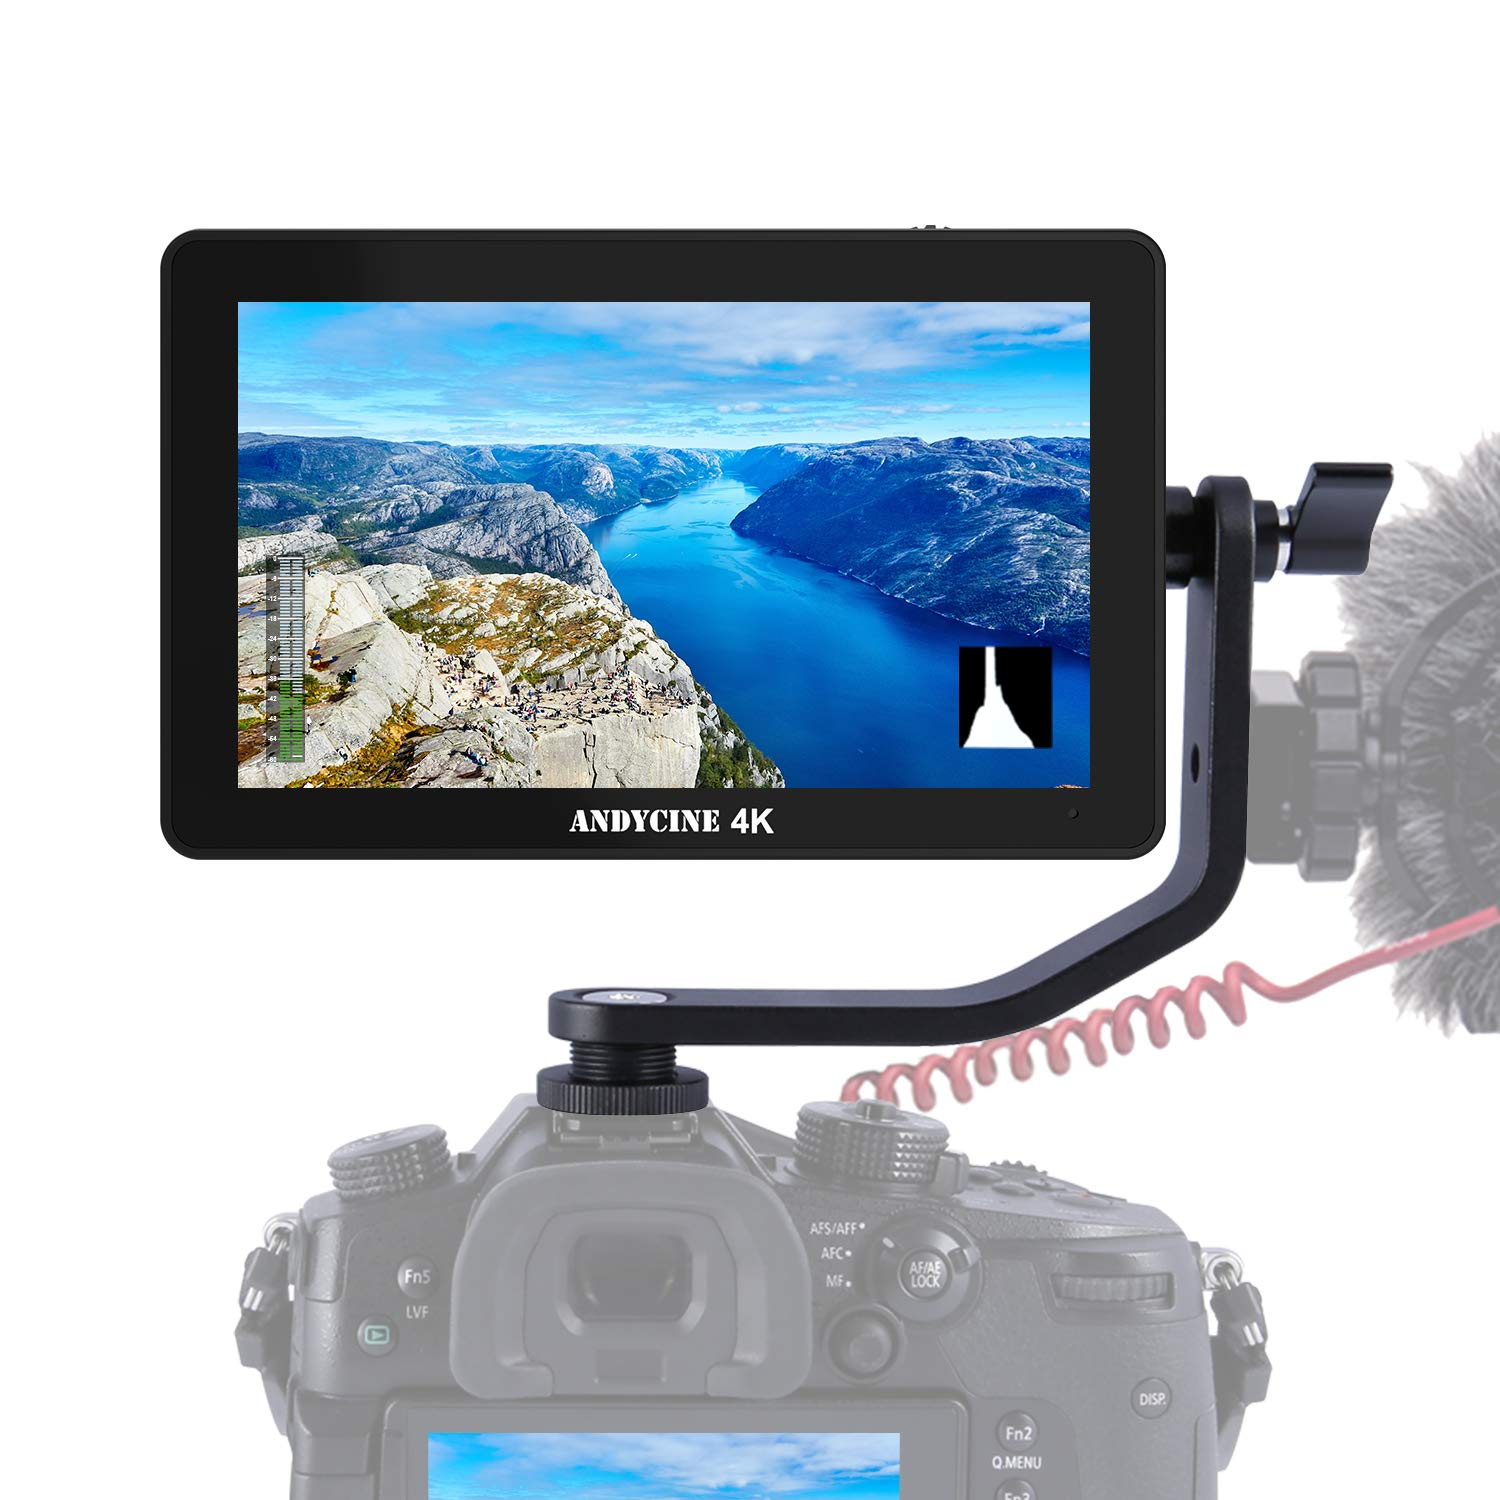 ANDYCINE A6 Plus 5.5inch Touch IPS 1920X1080 4K HDMI Camera Monitor 3D Lut Camera Video Field Monitor by ANDYCINE